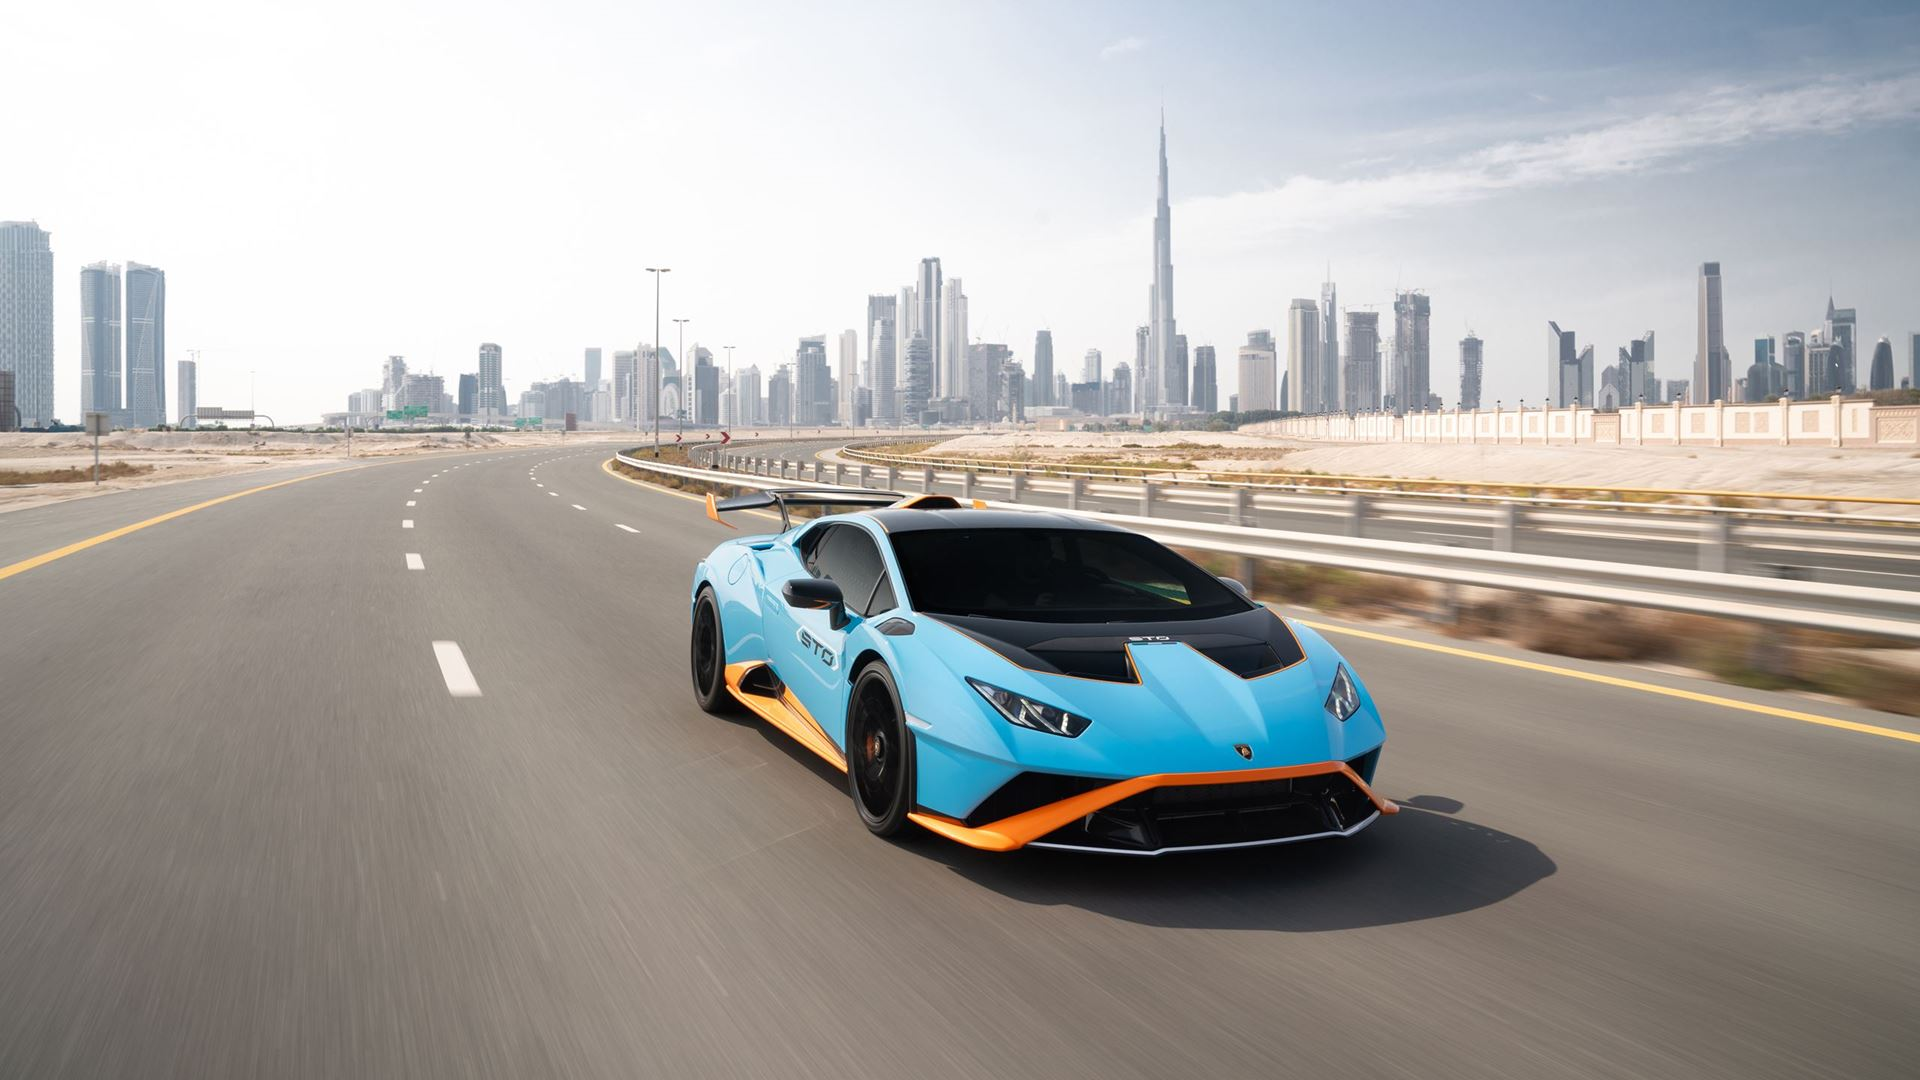 #Focu5on: Five surprising facts about the new Lamborghini Huracán STO - Image 4